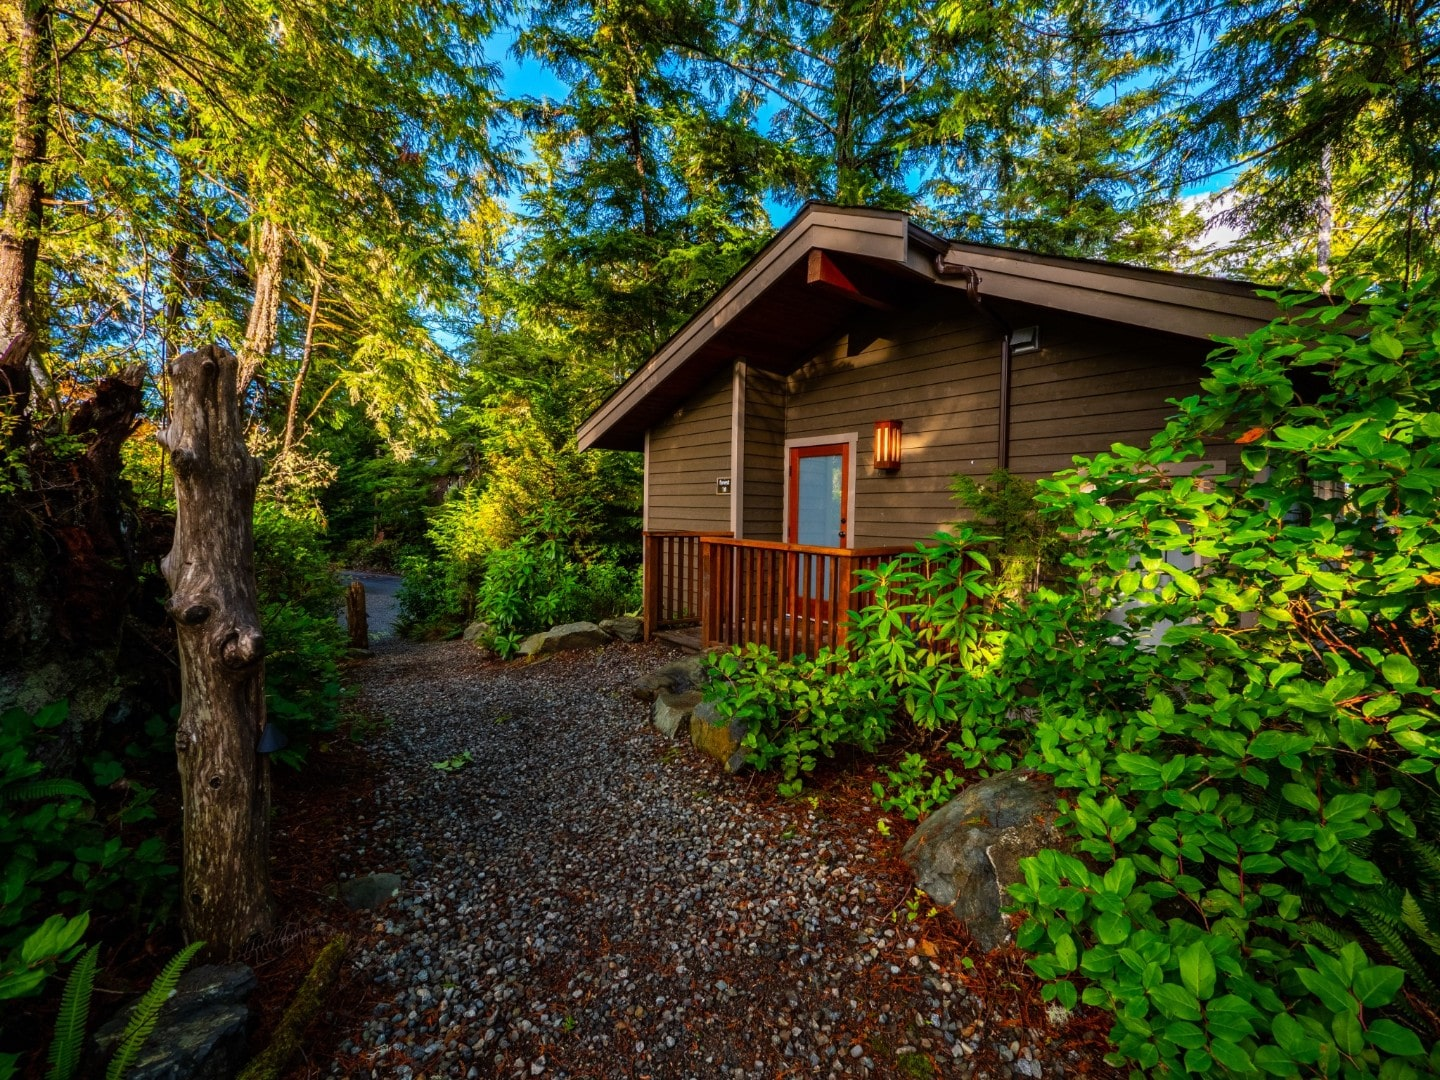 Upper Canopy - Rainforest Ucluelet Accommodation